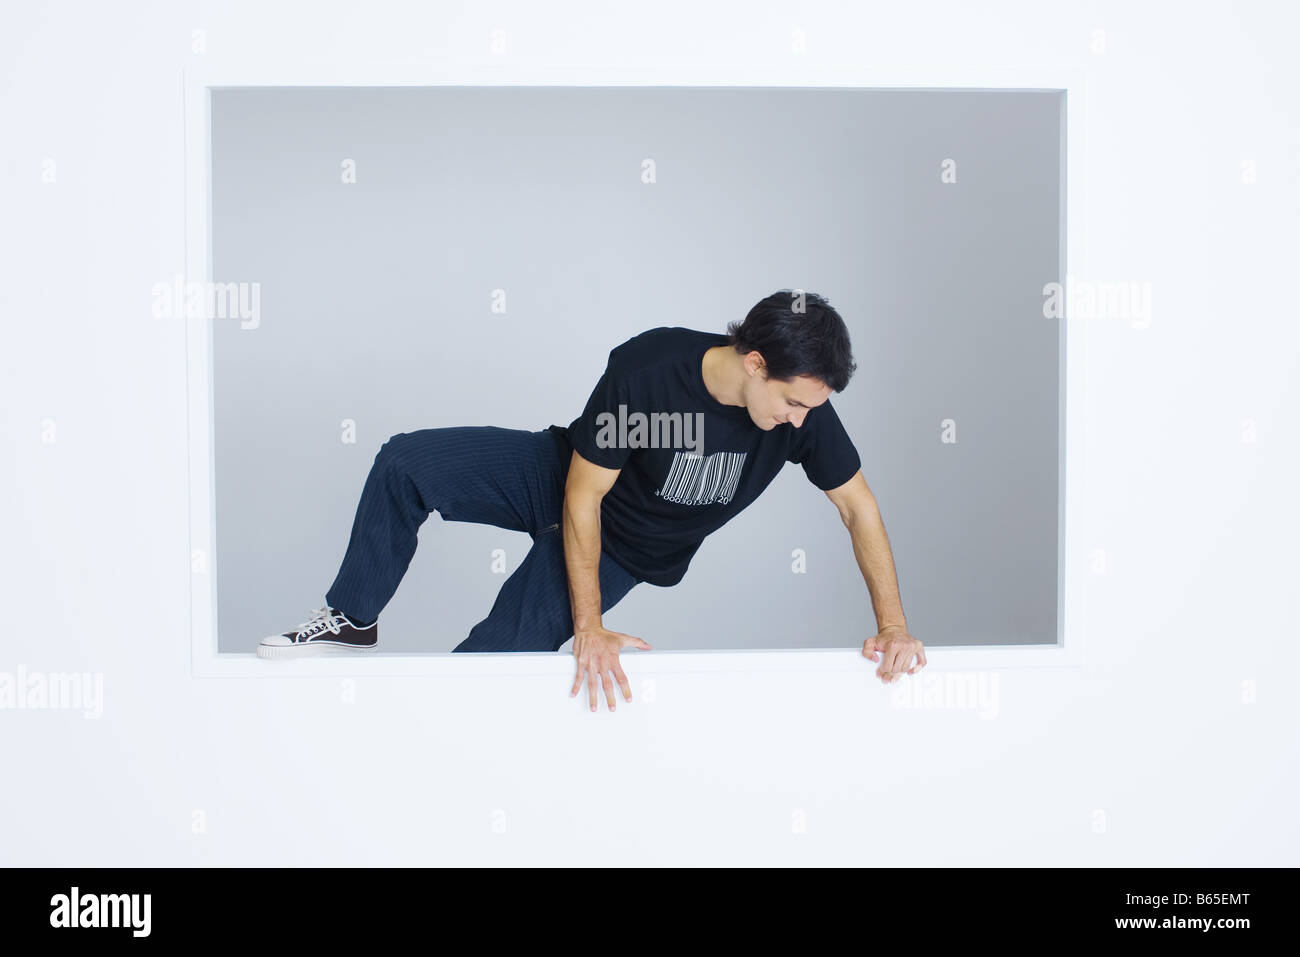 Man climbing over wall, wearing tee-shirt with bar code printed on it Stock Photo